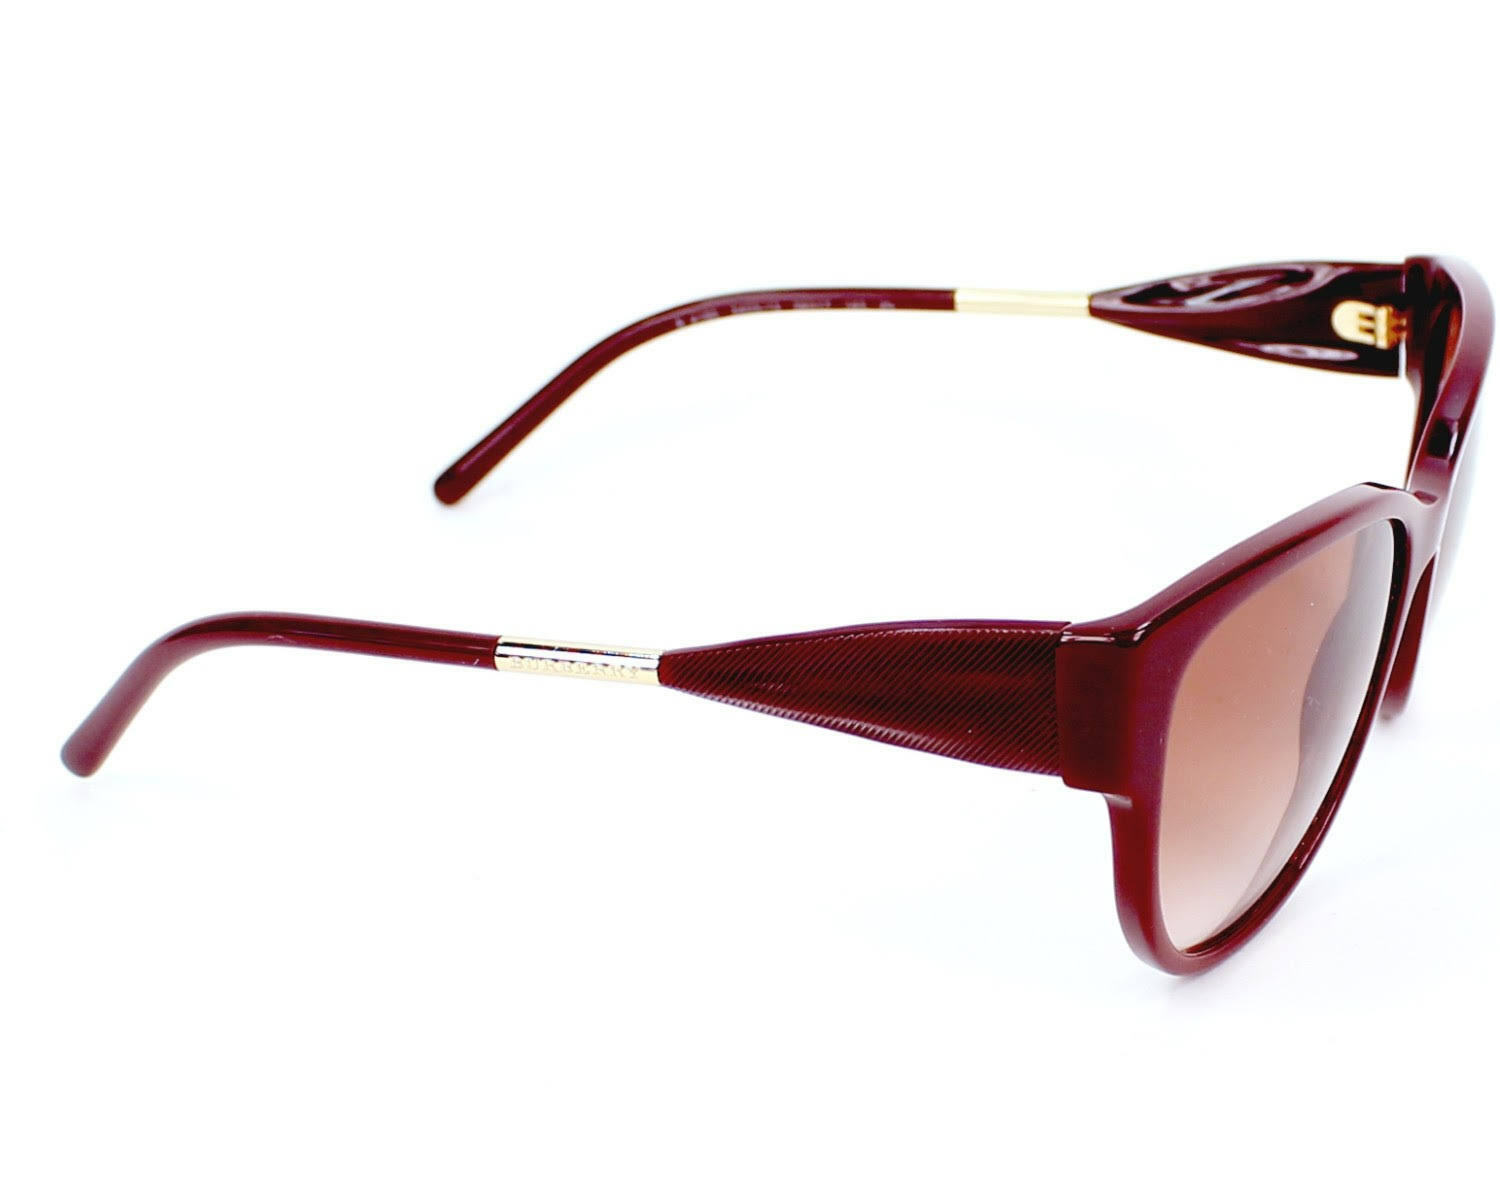 41bb4857d4af Burberry Women s Sunglasses B 4190 3403 13 Red Authentic B4190 56-17 ...